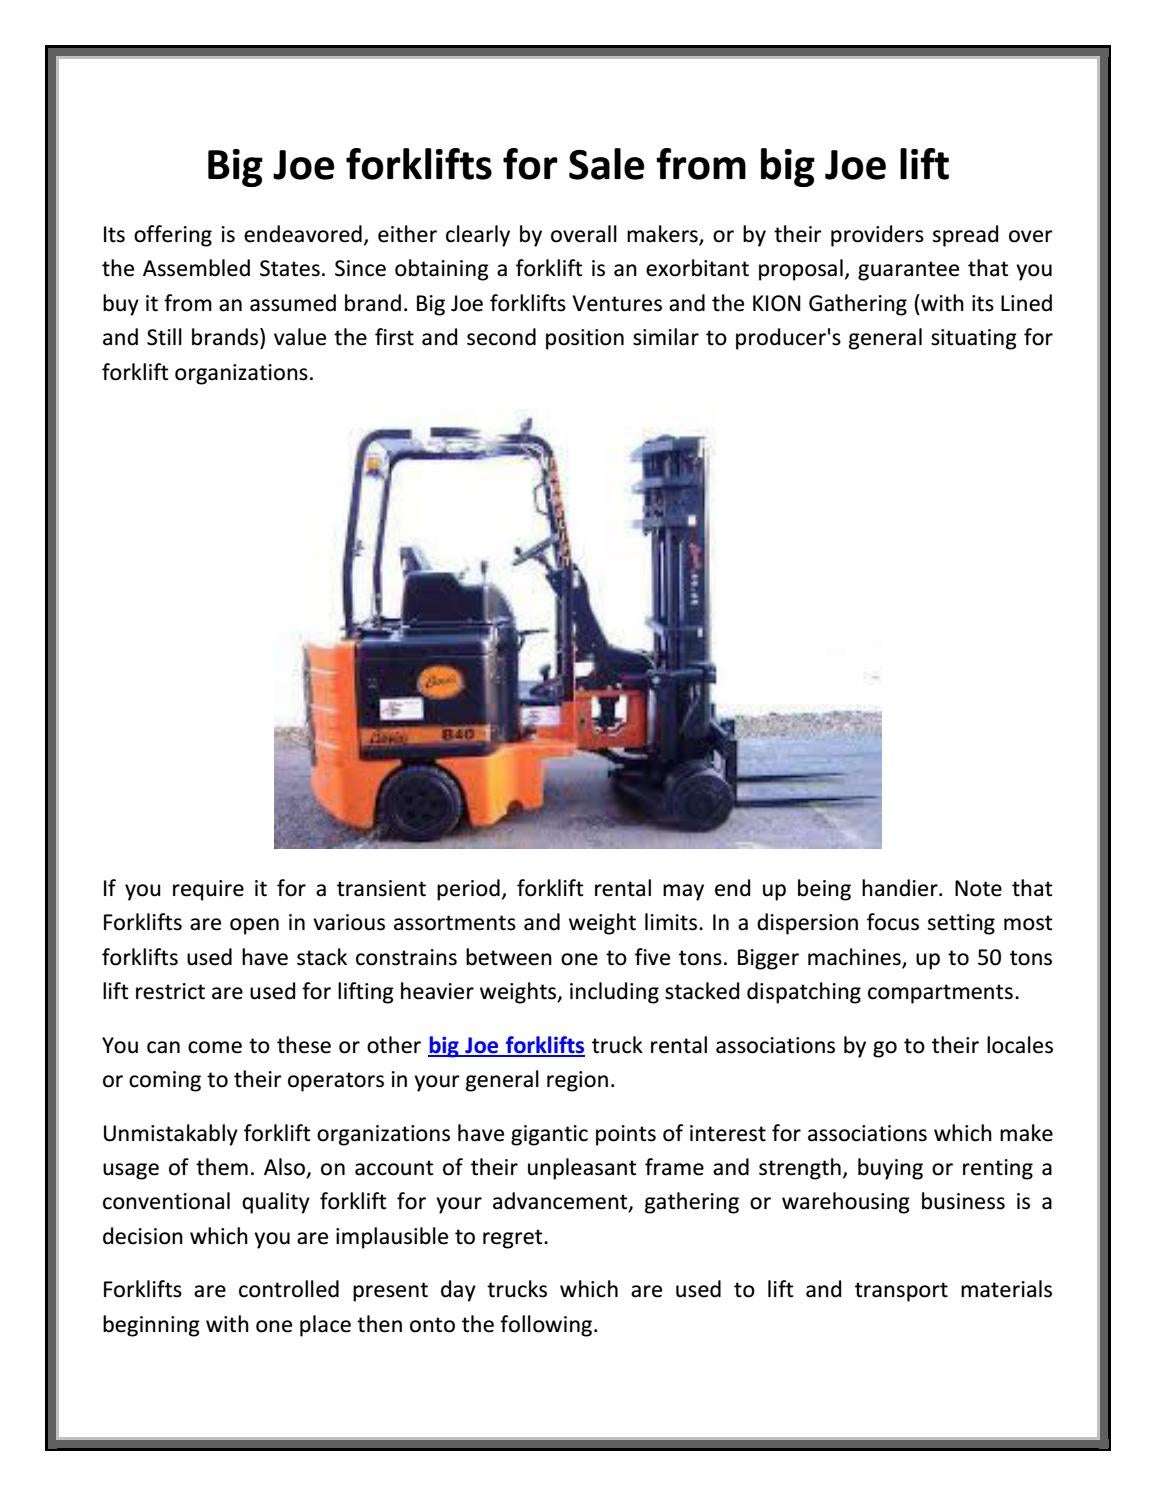 Big joe forklifts for sale from big joe lift by bigjoeliftca